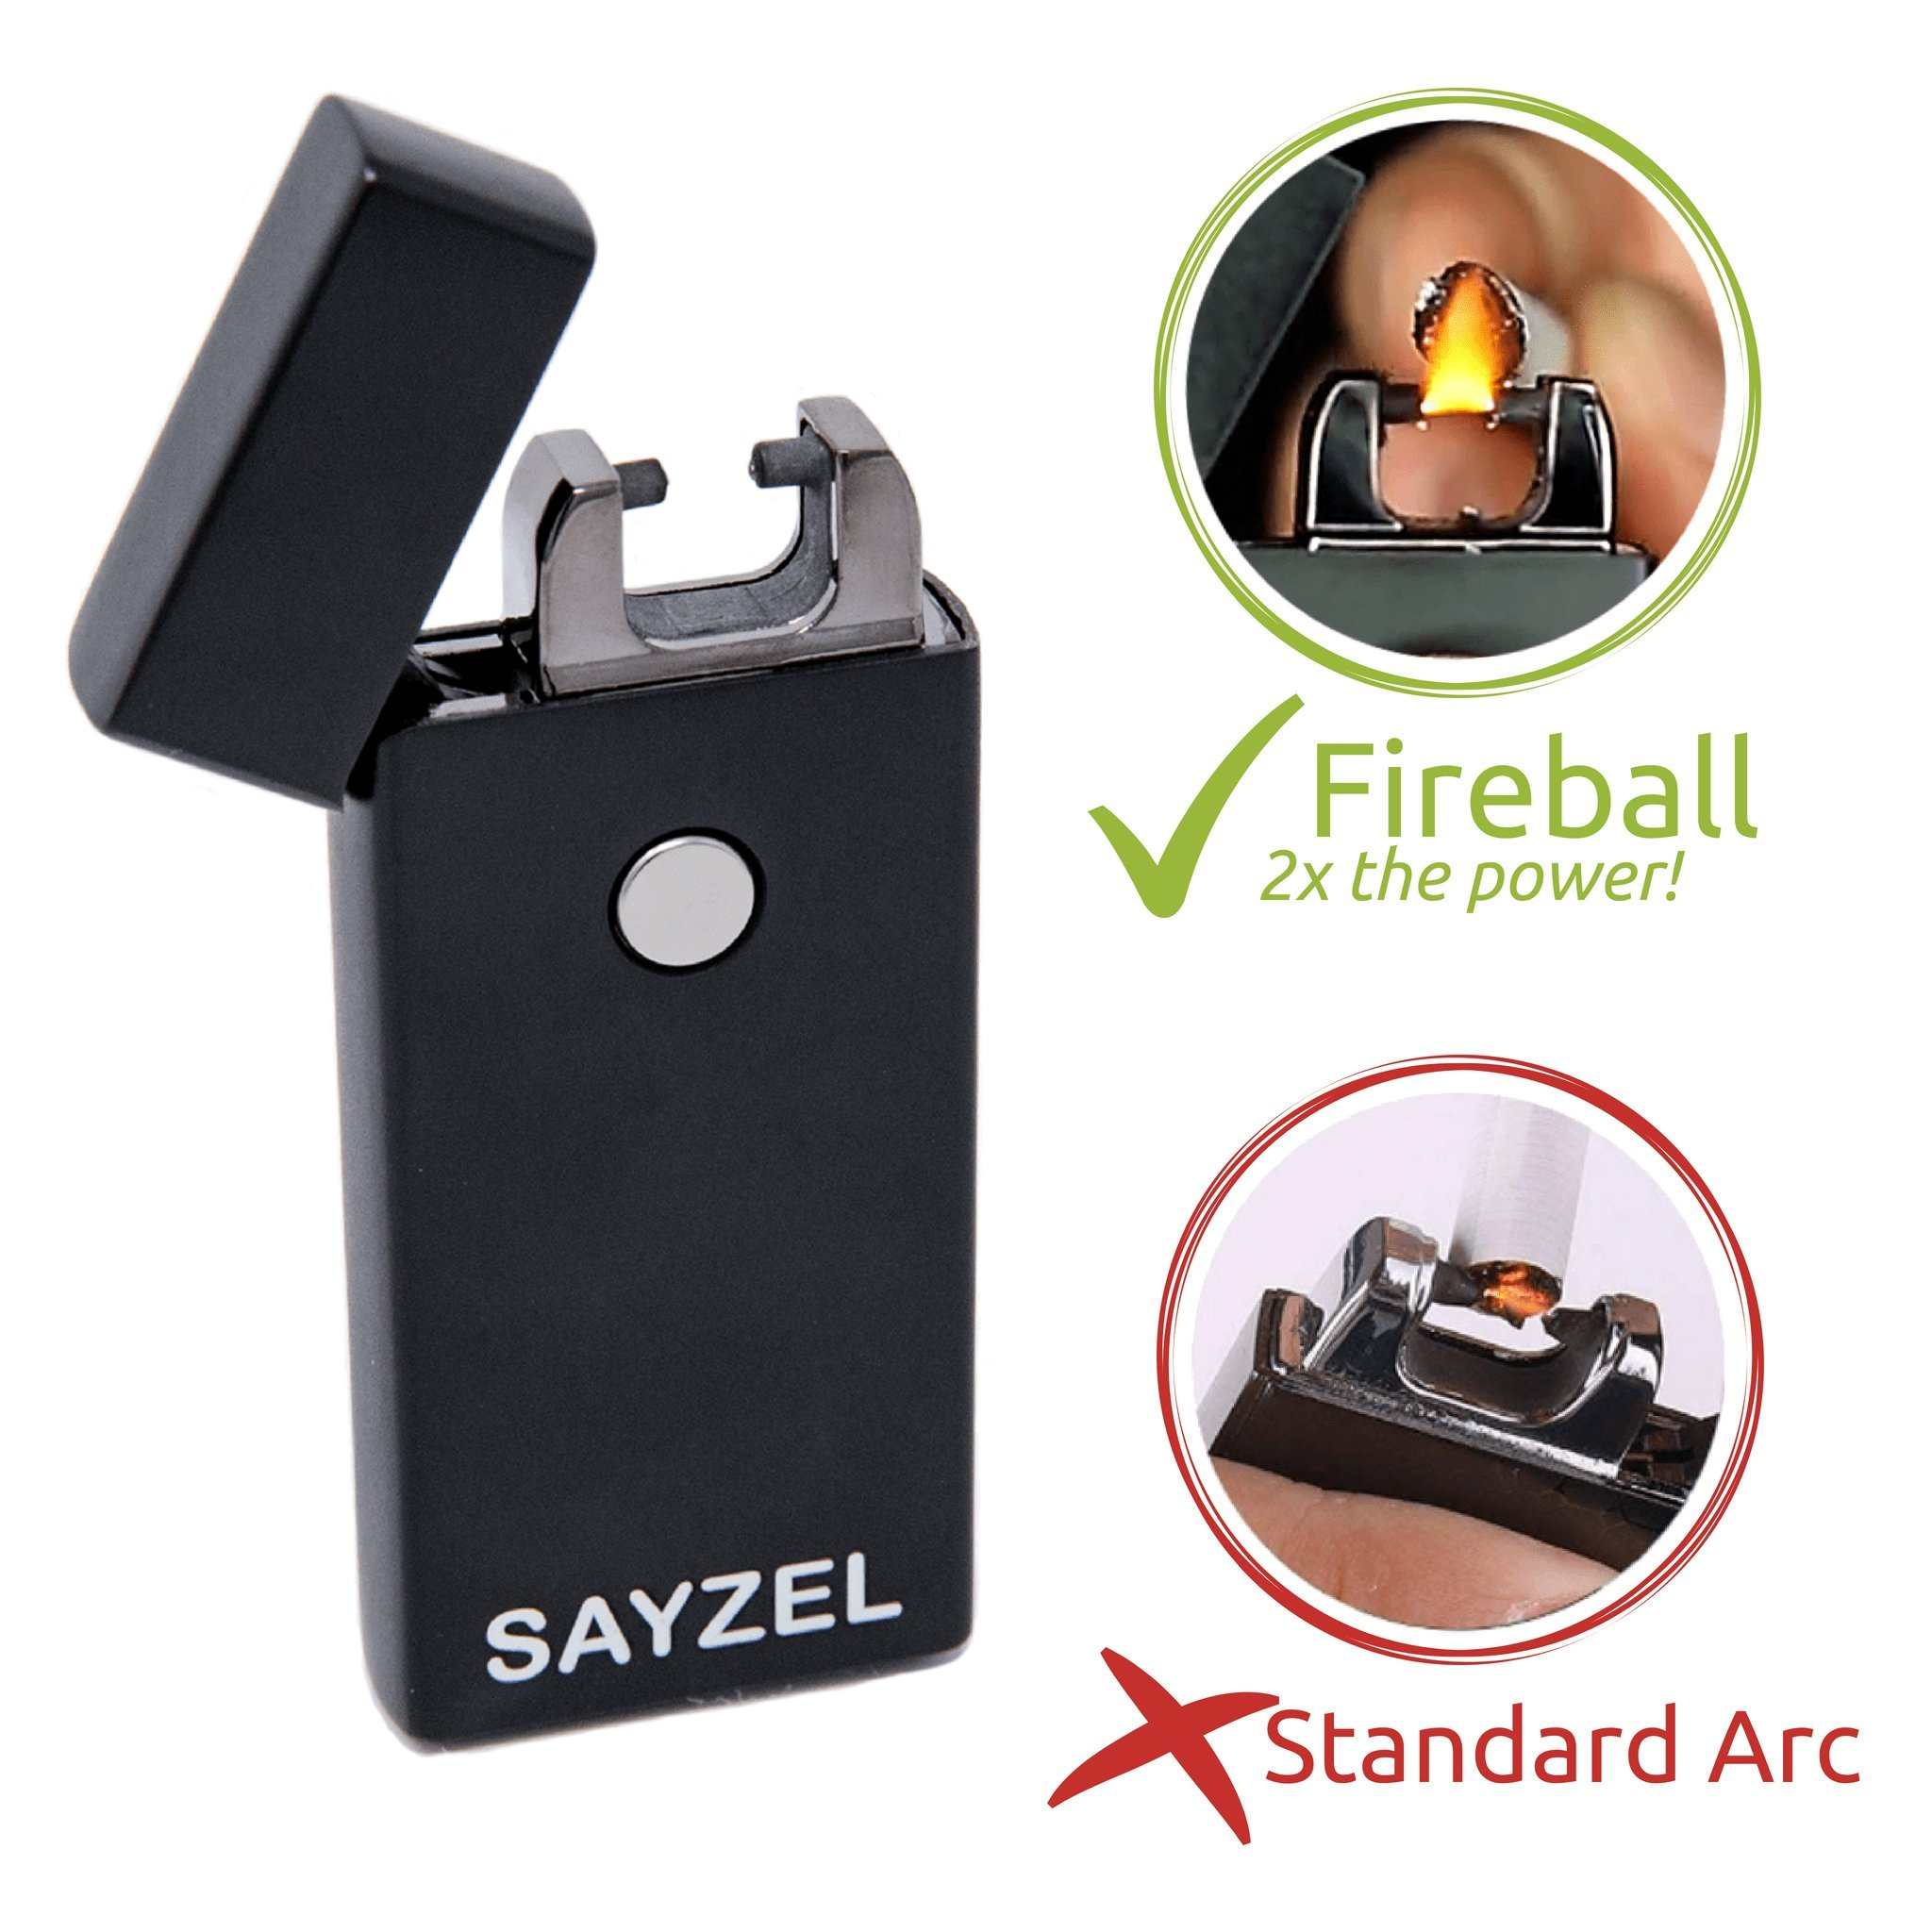 Atomic Arc Lighter with New Fireball Tech — Windproof Electric Plasma Lighter — USB Rechargeable, USB Charge Cable Included — Fun Flame Lighter — Great for Cigarettes, Cigars, Candles, and More